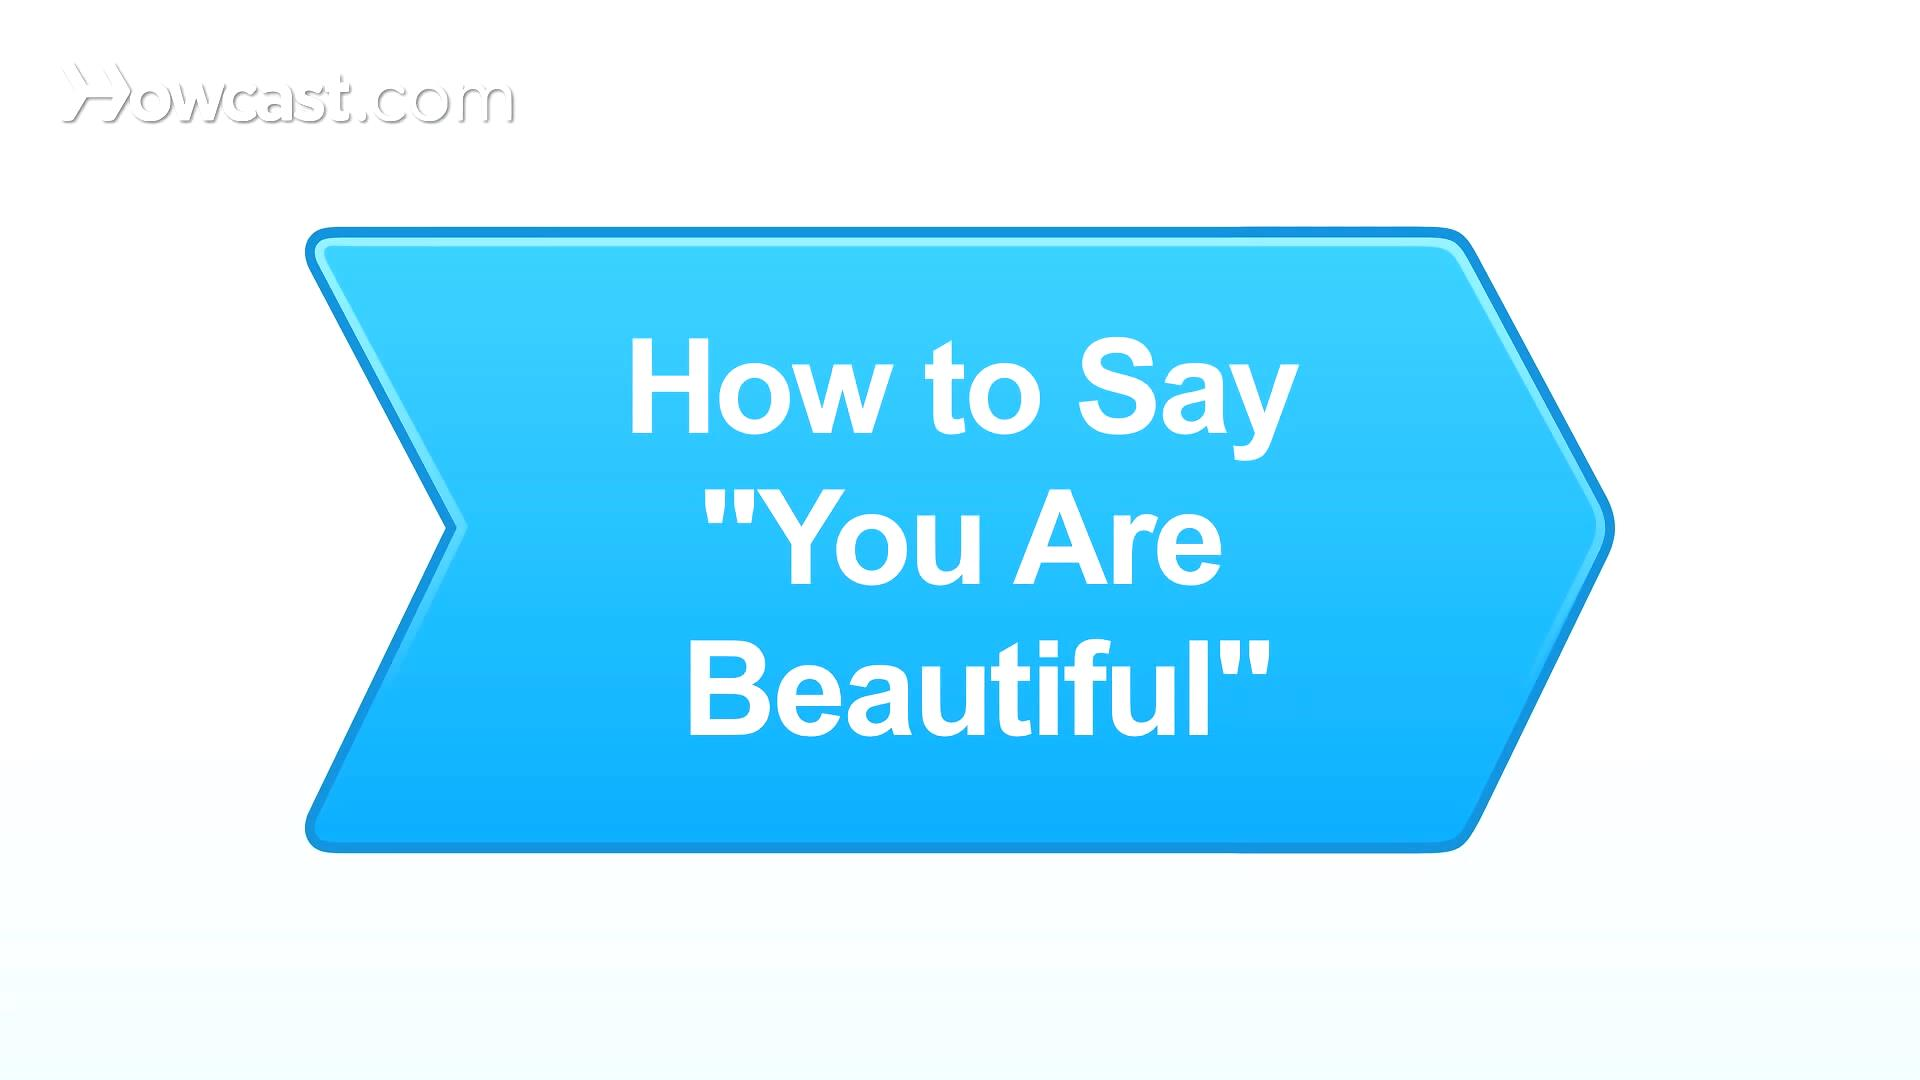 How To Say You Are Beautiful In German